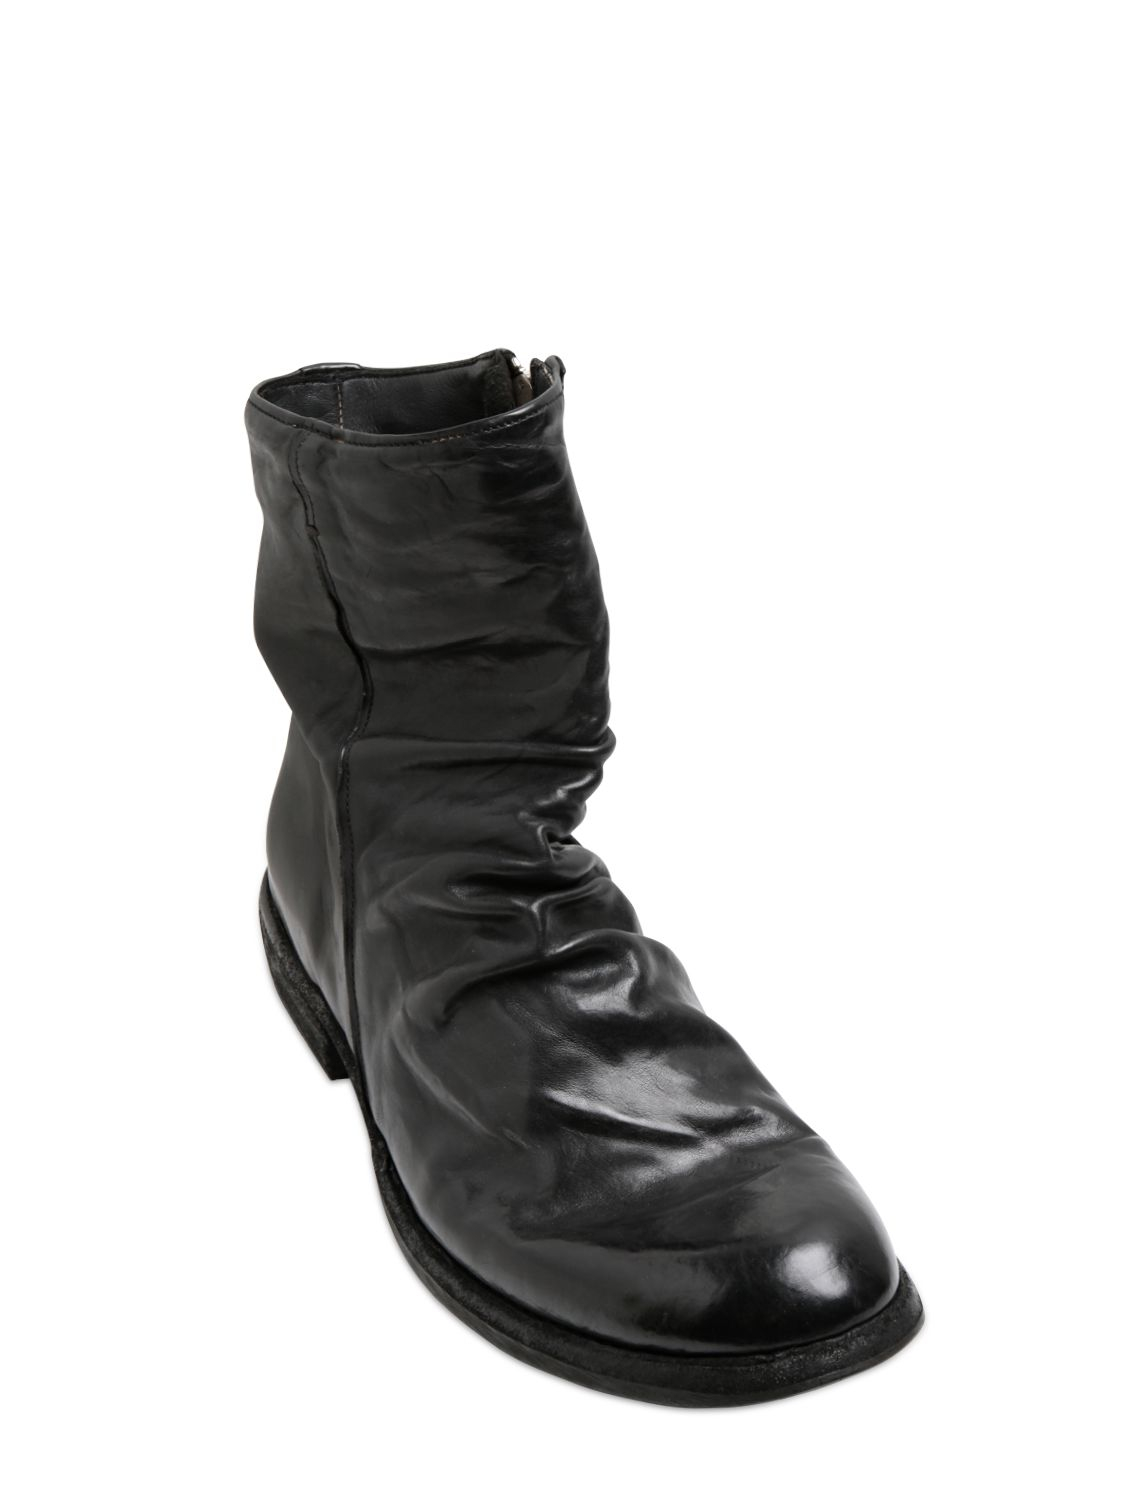 officine creative brushed washed wrinkled leather boots in